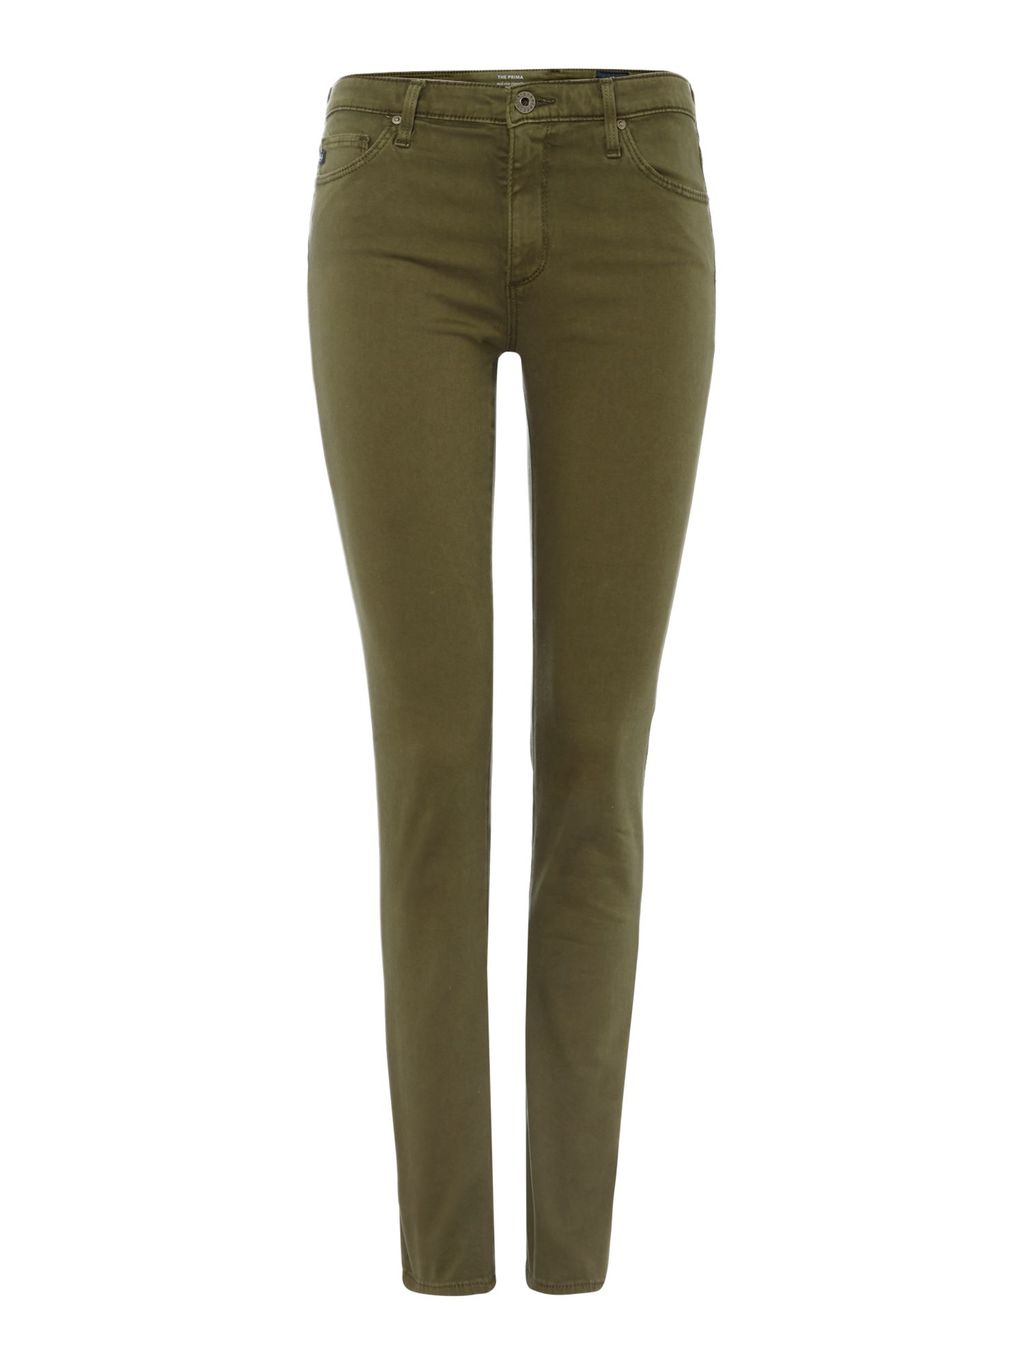 Prima Cigarette Jean In Sulfur Olive Night, Denim Rinse - style: skinny leg; length: standard; pattern: plain; pocket detail: traditional 5 pocket; waist: mid/regular rise; predominant colour: khaki; occasions: casual, creative work; fibres: cotton - stretch; texture group: denim; pattern type: fabric; season: s/s 2016; wardrobe: highlight